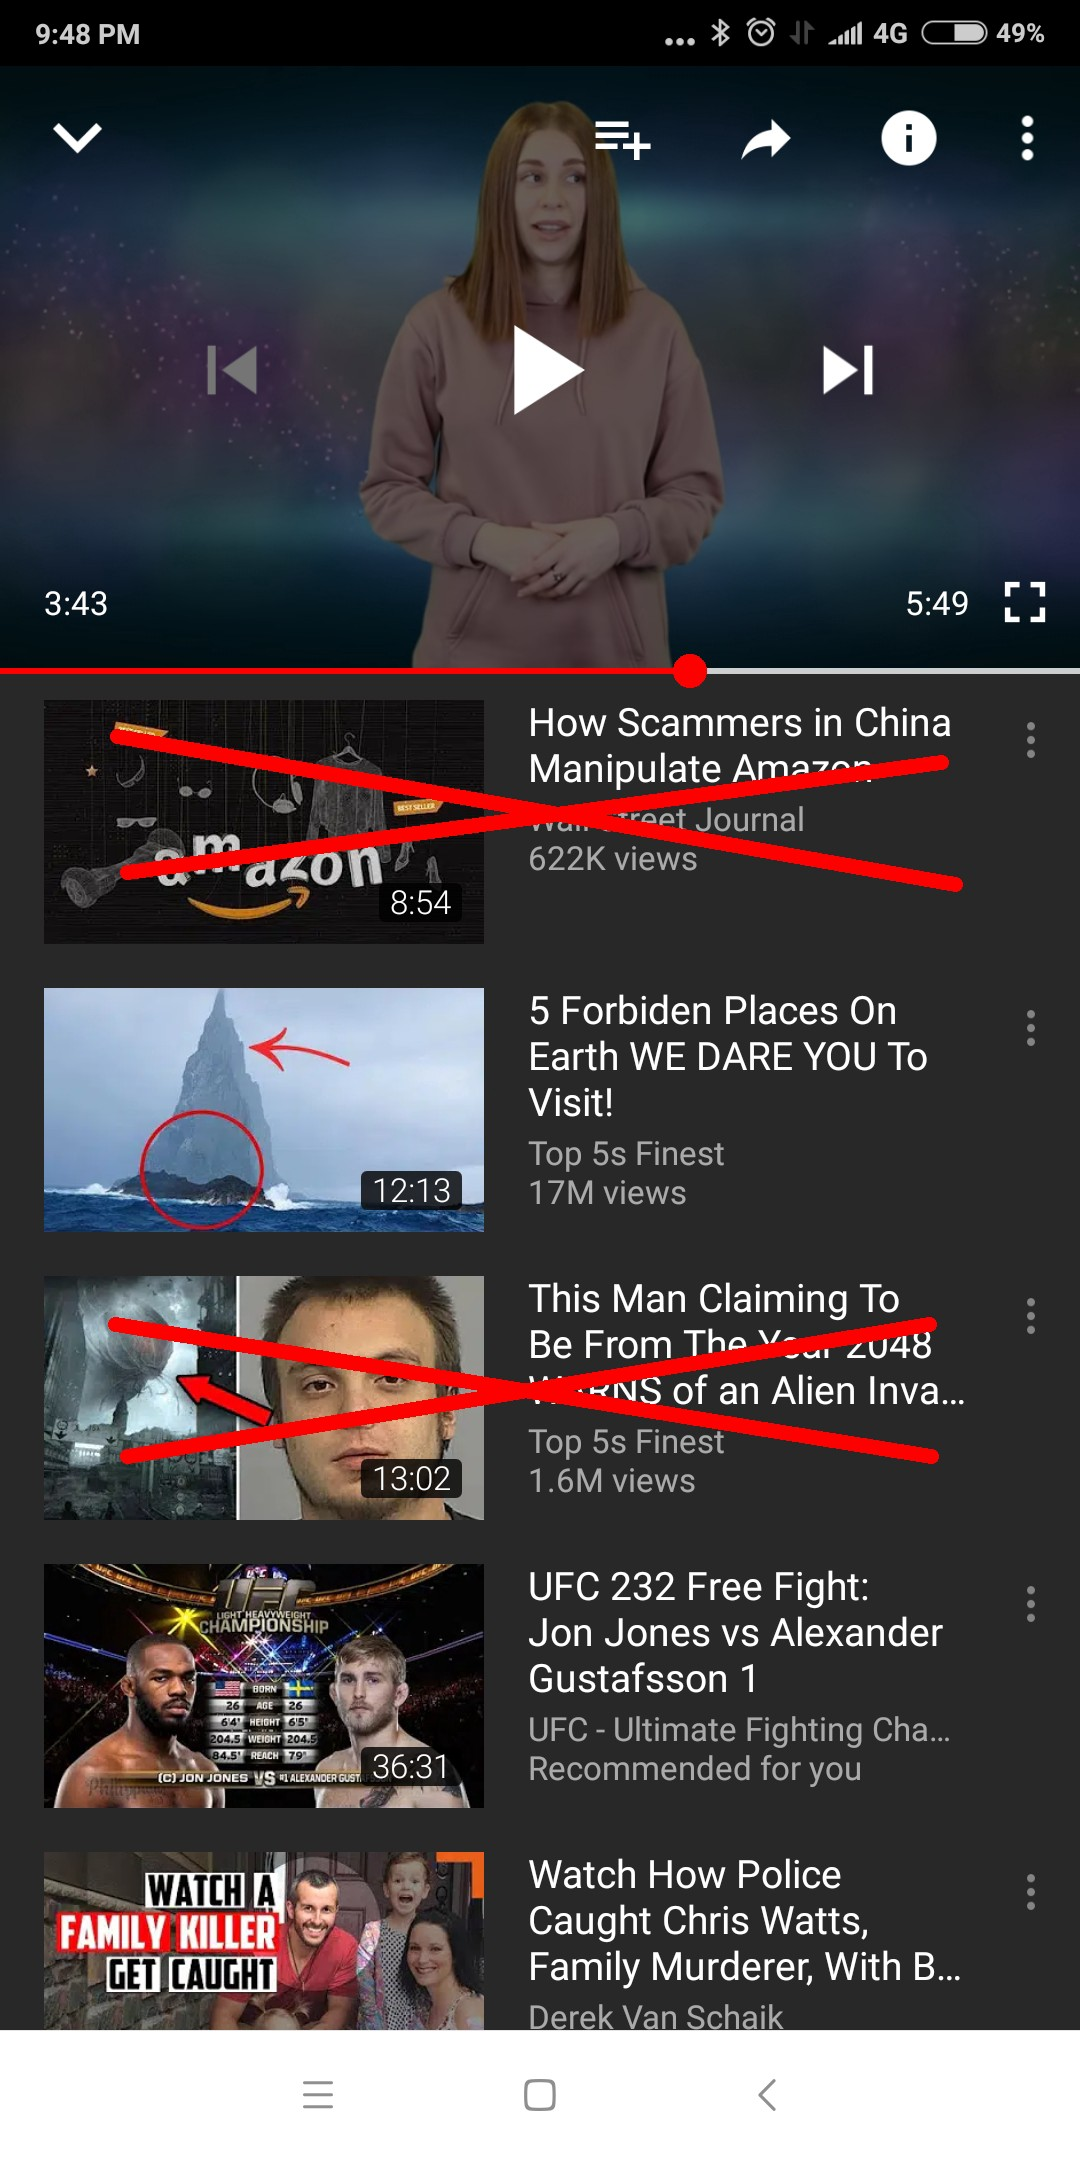 /a-suggestion-for-sanitizing-youtube-recommendations-and-search-results-a16176f0d9d0 feature image